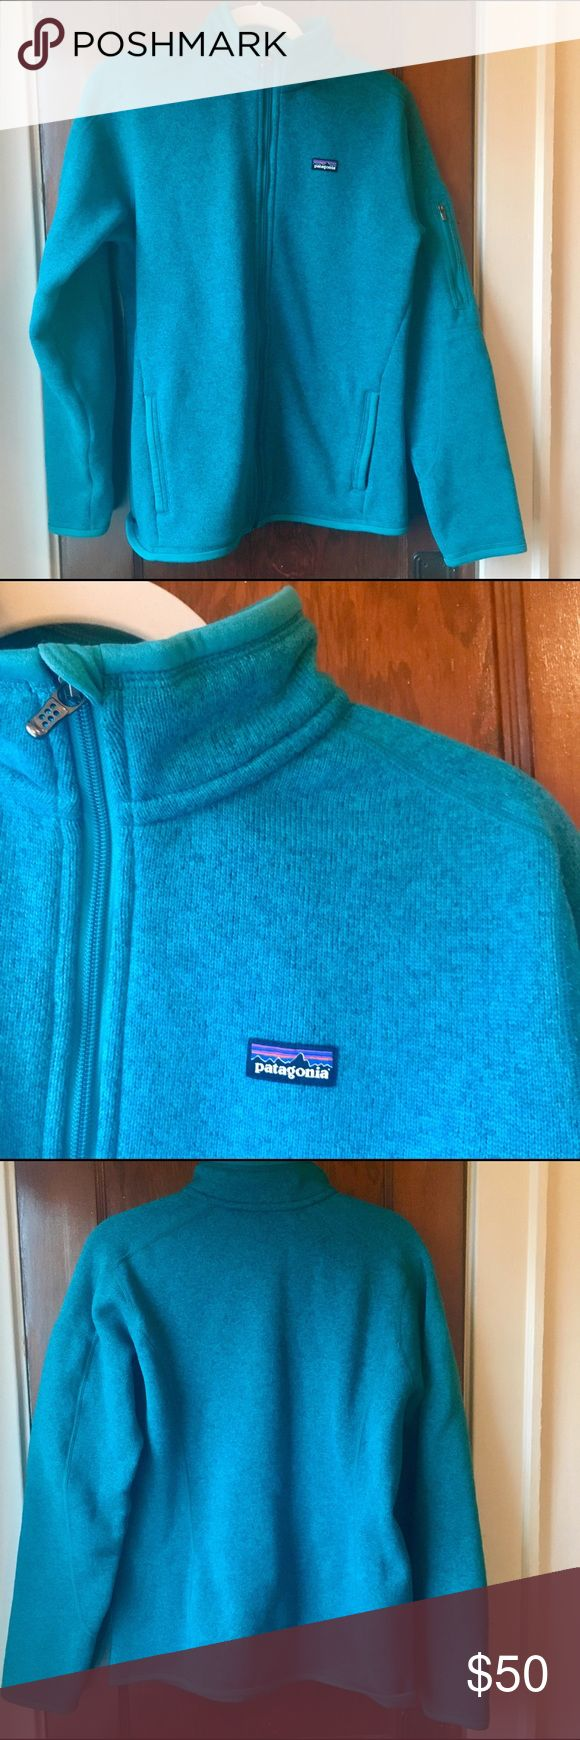 """Patagonia Fleece Jacket - Patagonia Better Sweater Fleece Jacket in teal/bluish - Size large, fits true to size - 100% polyester - Outer layer is a knit, inside is lined with soft fleece - Two zipper pockets in front, smaller zipper pocket on arm - Center back length 29"""" - Excellent condition, worn 3-4 times Patagonia Jackets & Coats"""